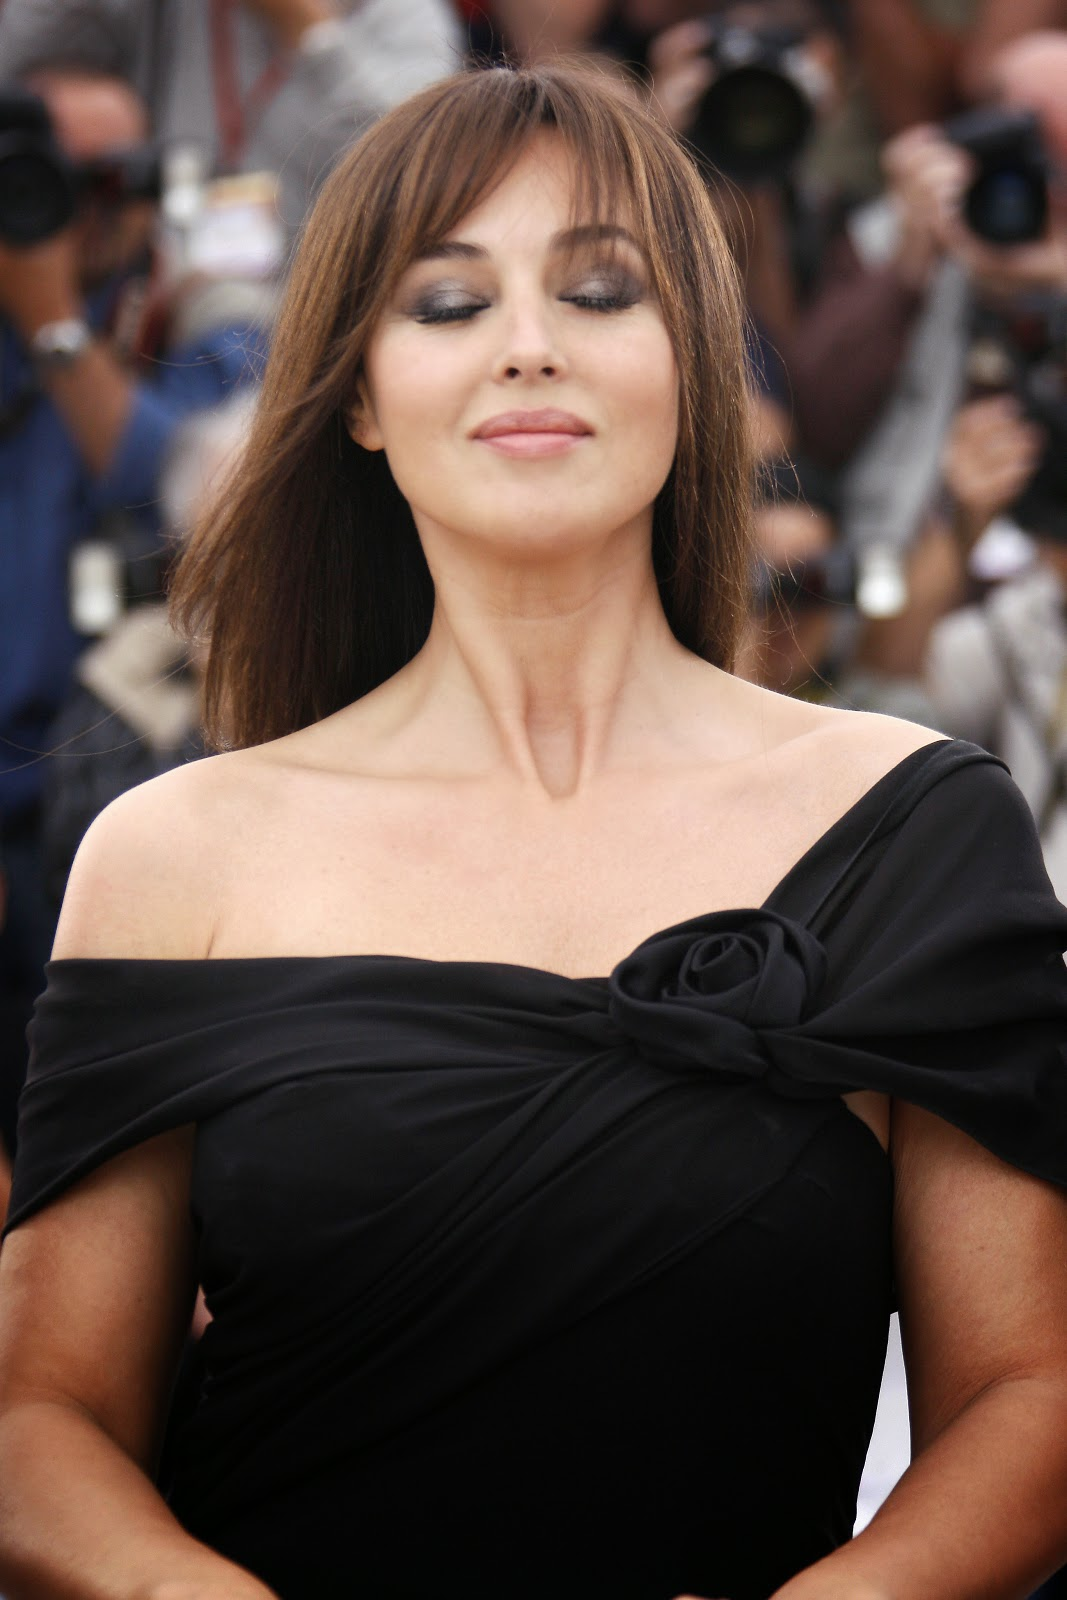 specter actress monica bellucci hd images monica bellucci is oldest bond girl in new film. Black Bedroom Furniture Sets. Home Design Ideas